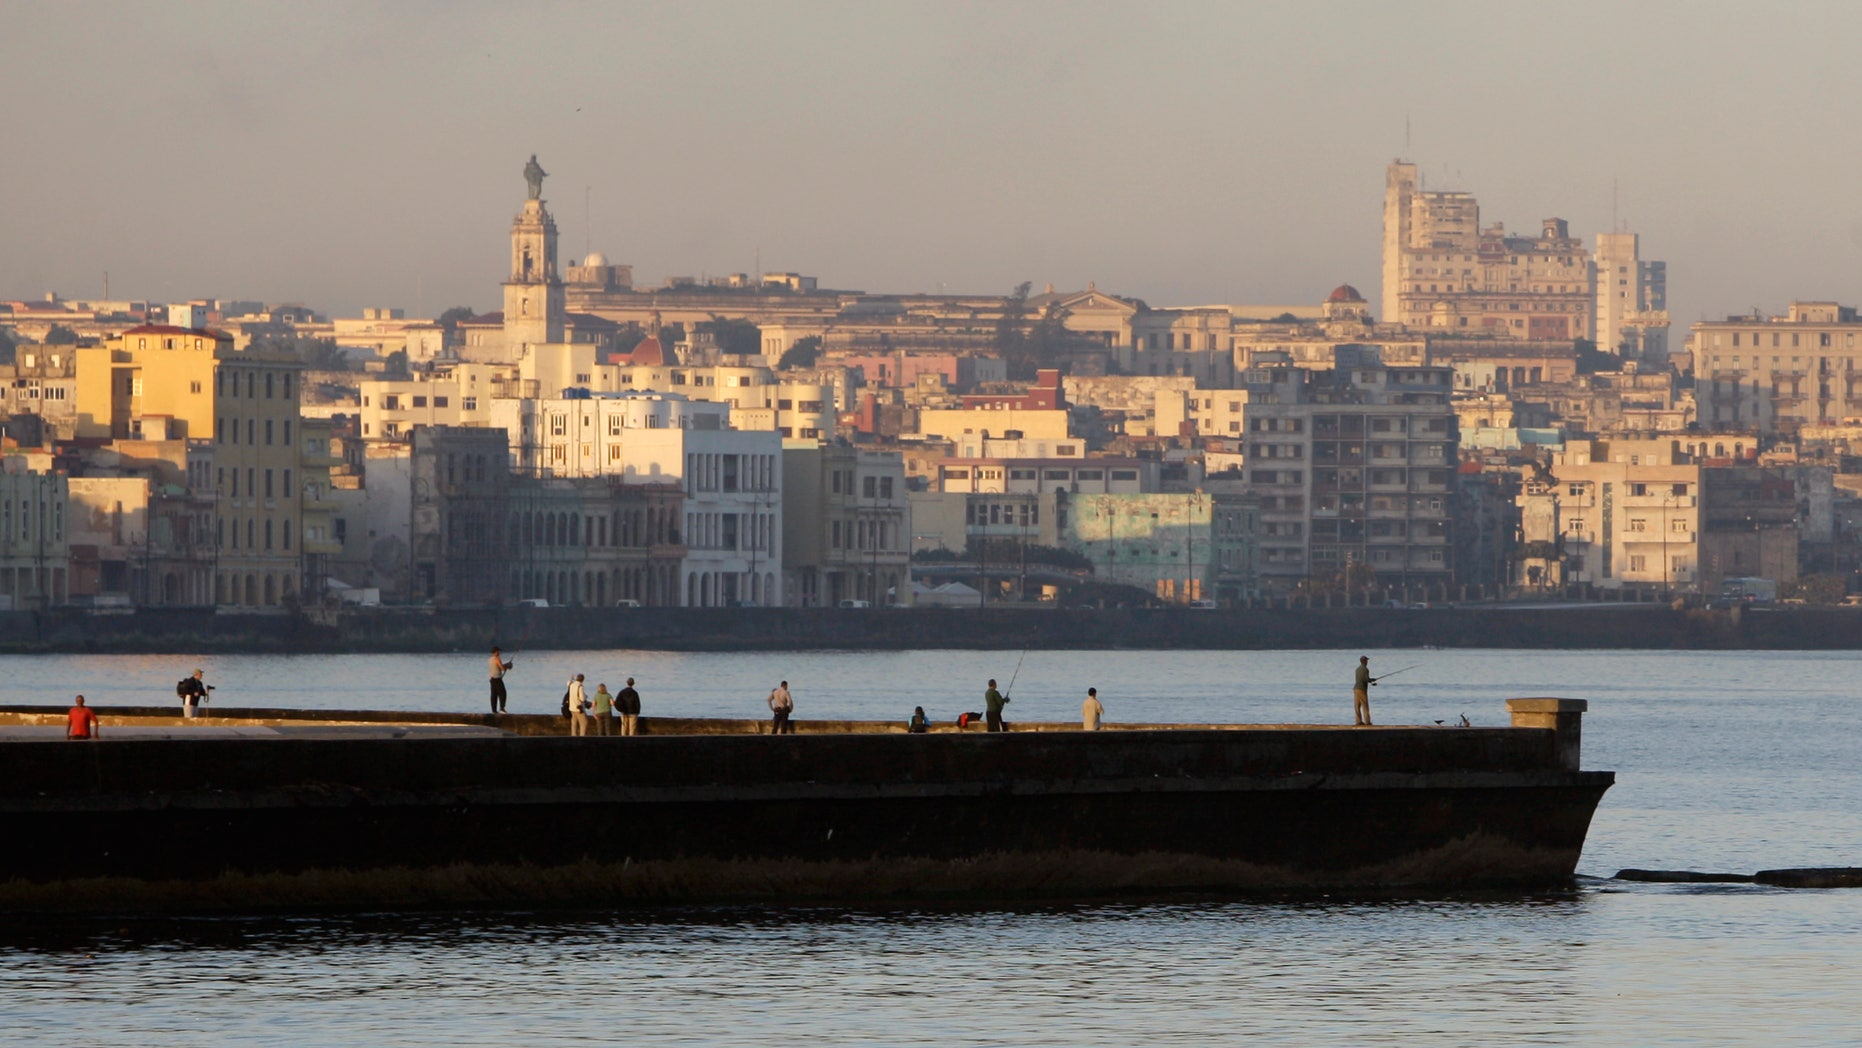 People fish from a dock in Havana Bay, Cuba, Tuesday Feb. 7, 2012. (AP Photo/Franklin Reyes)